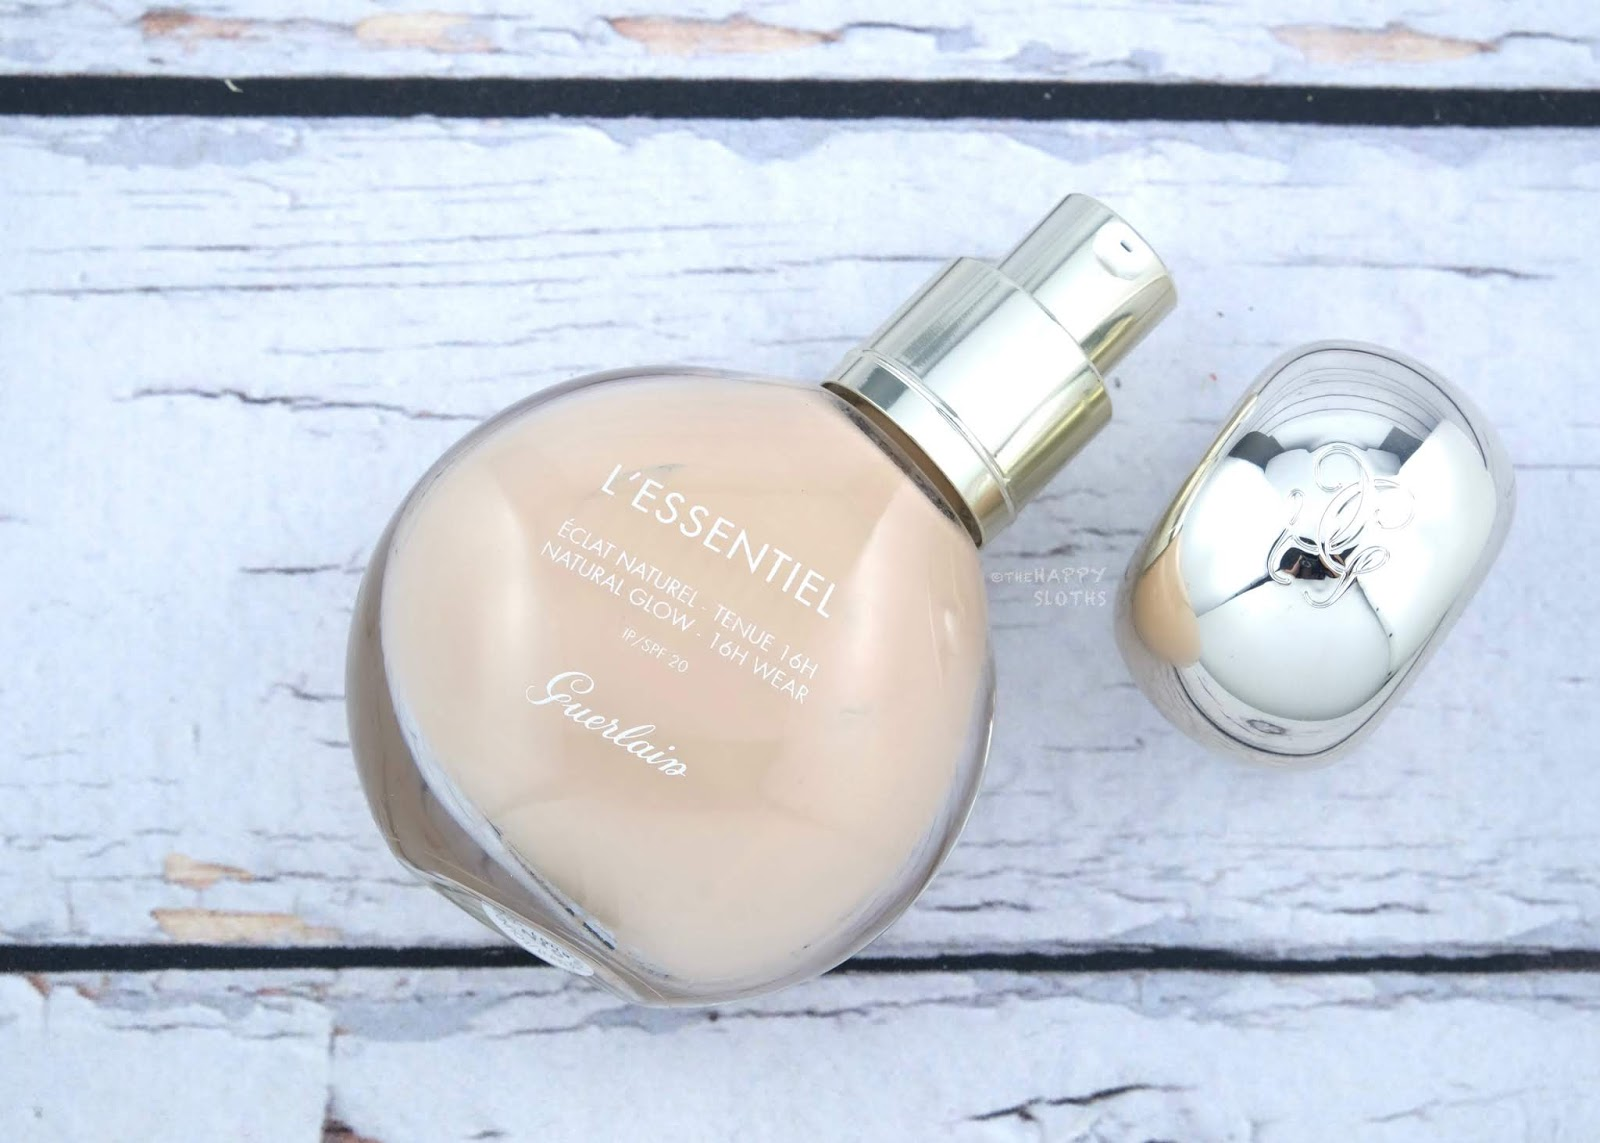 Guerlain | L'Essentiel Natural Glow Foundation: Review and Swatches